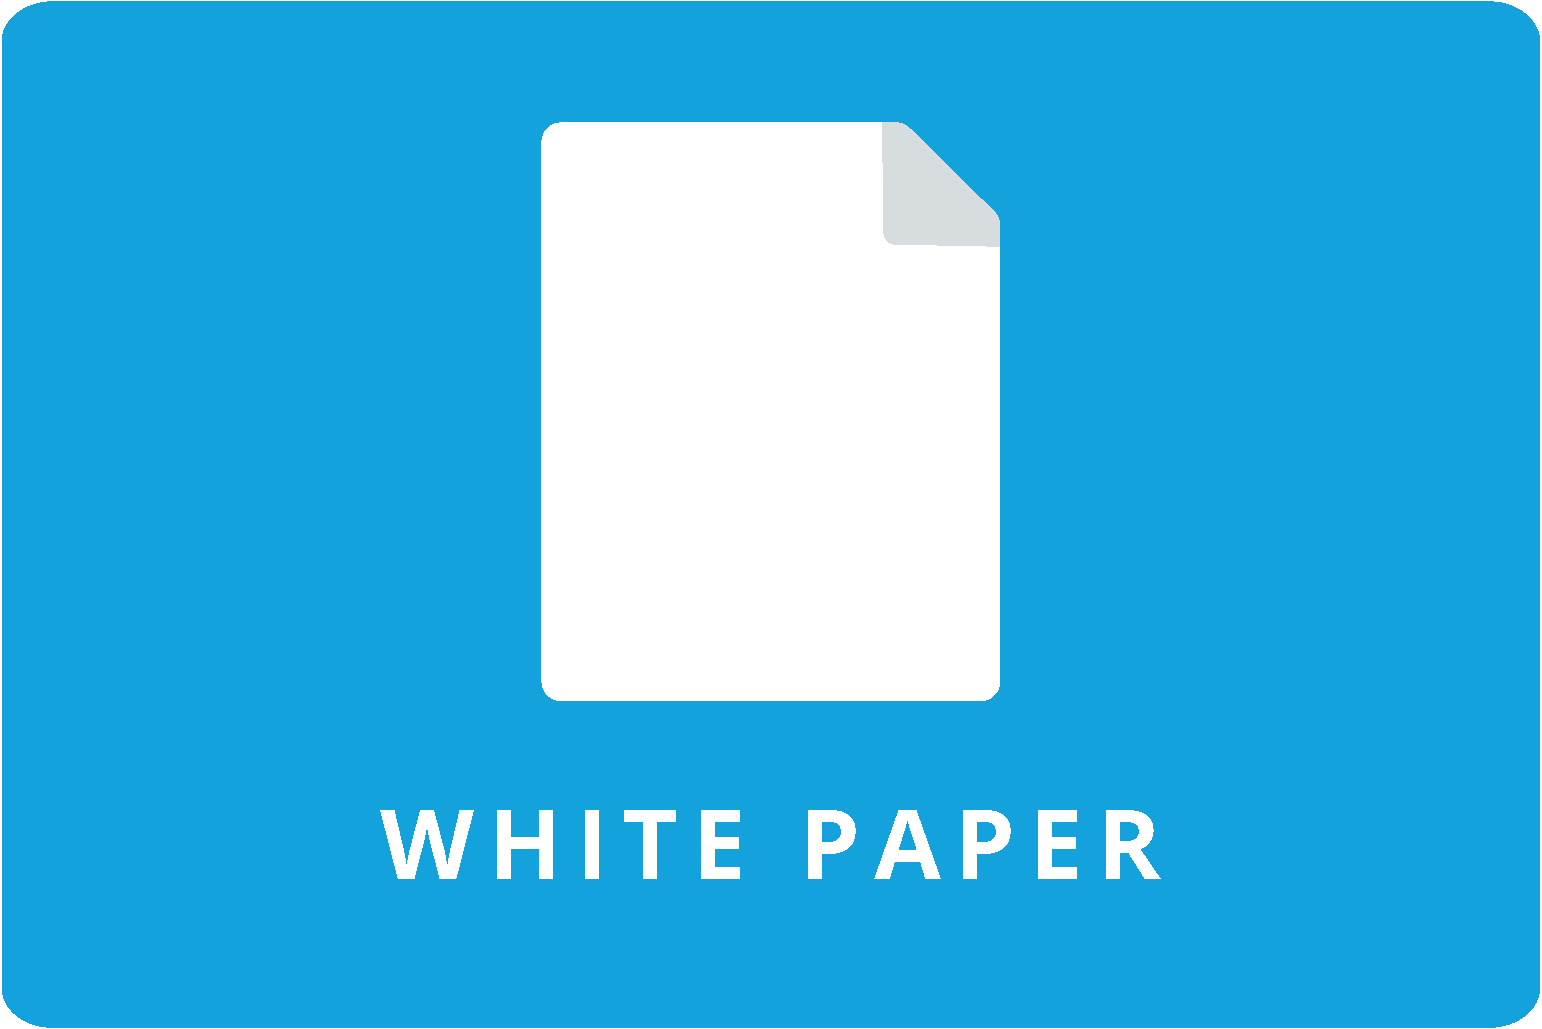 whitepaper-public-relations